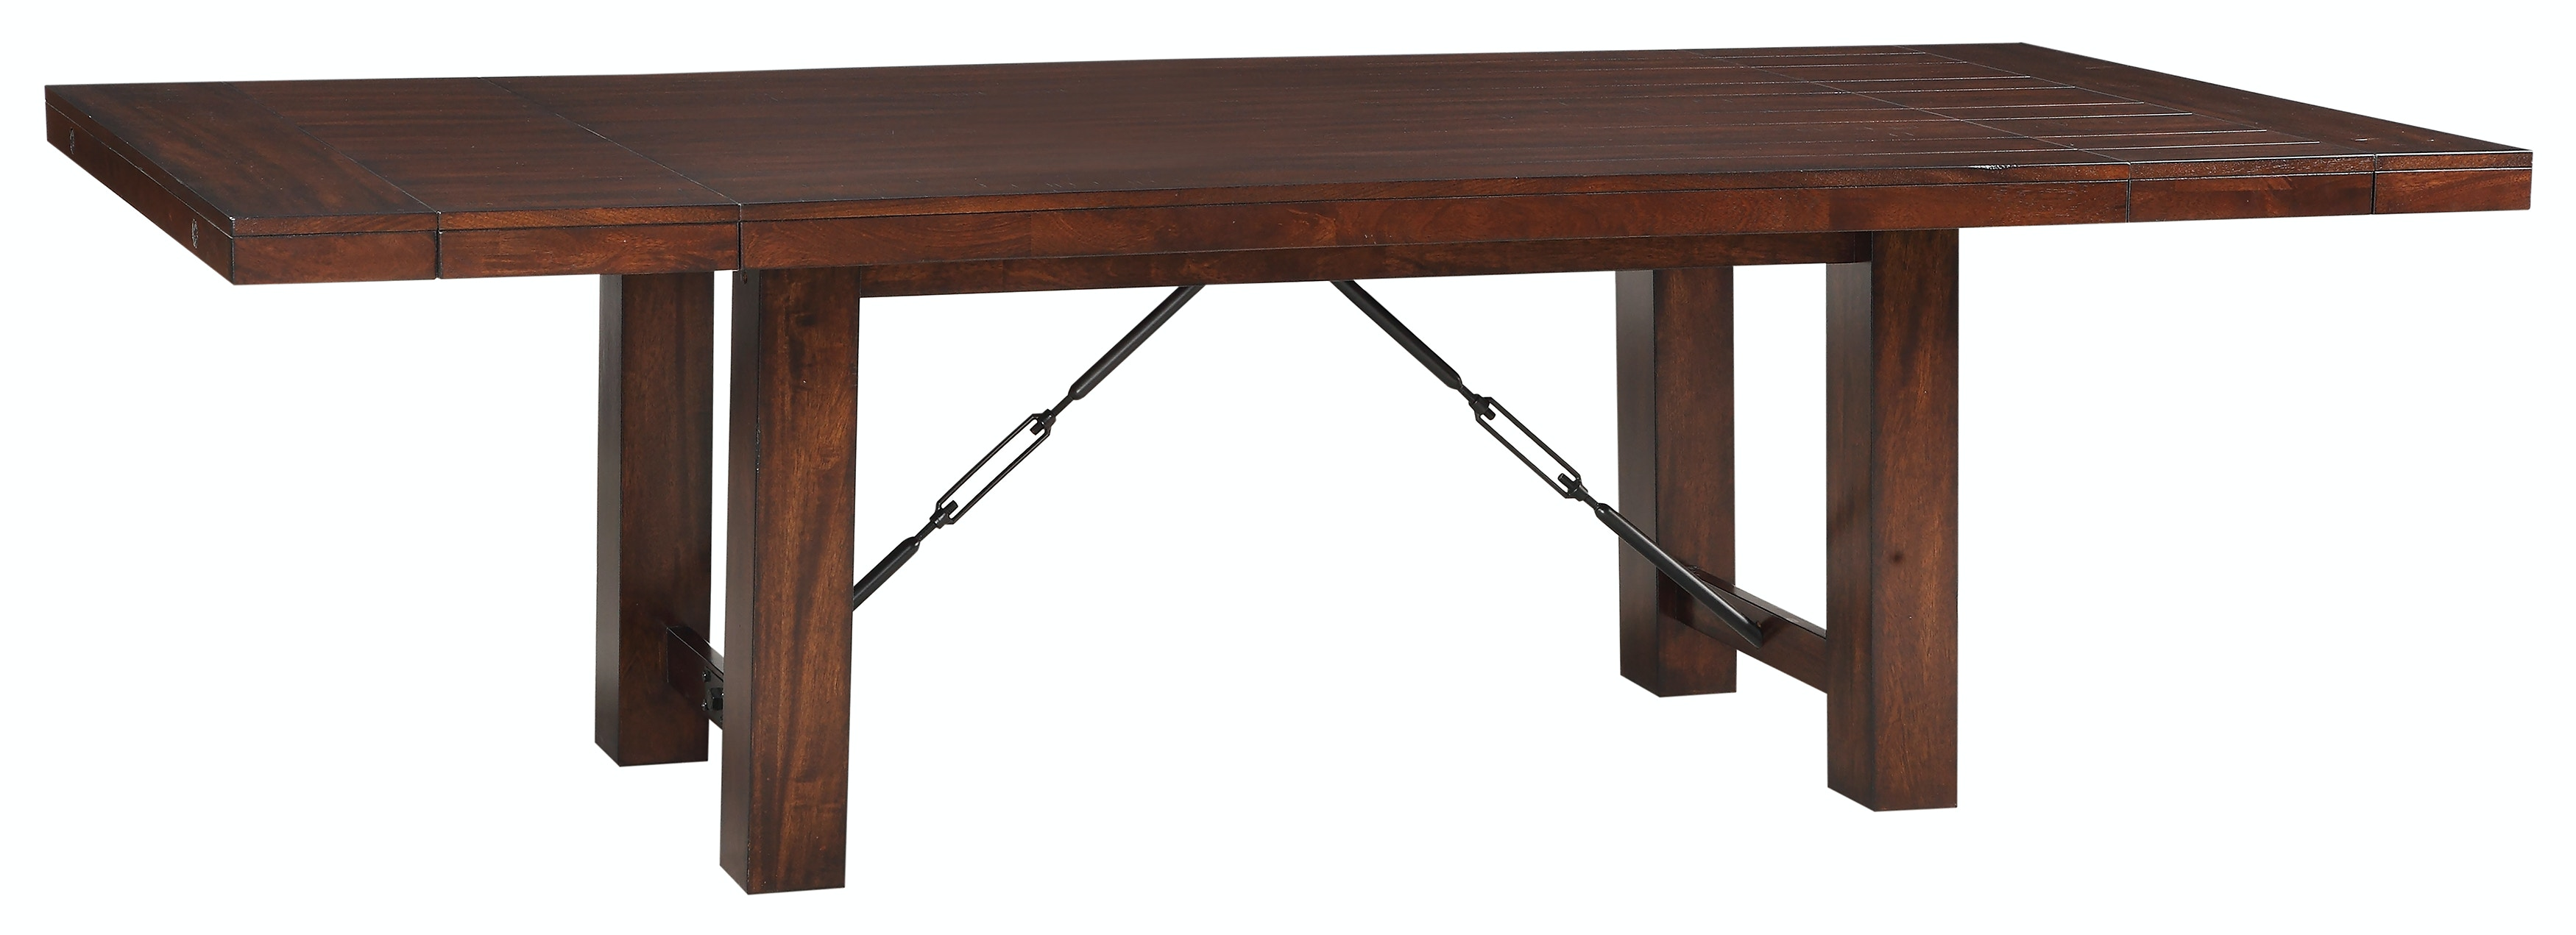 Hanover Trestle Dining Table